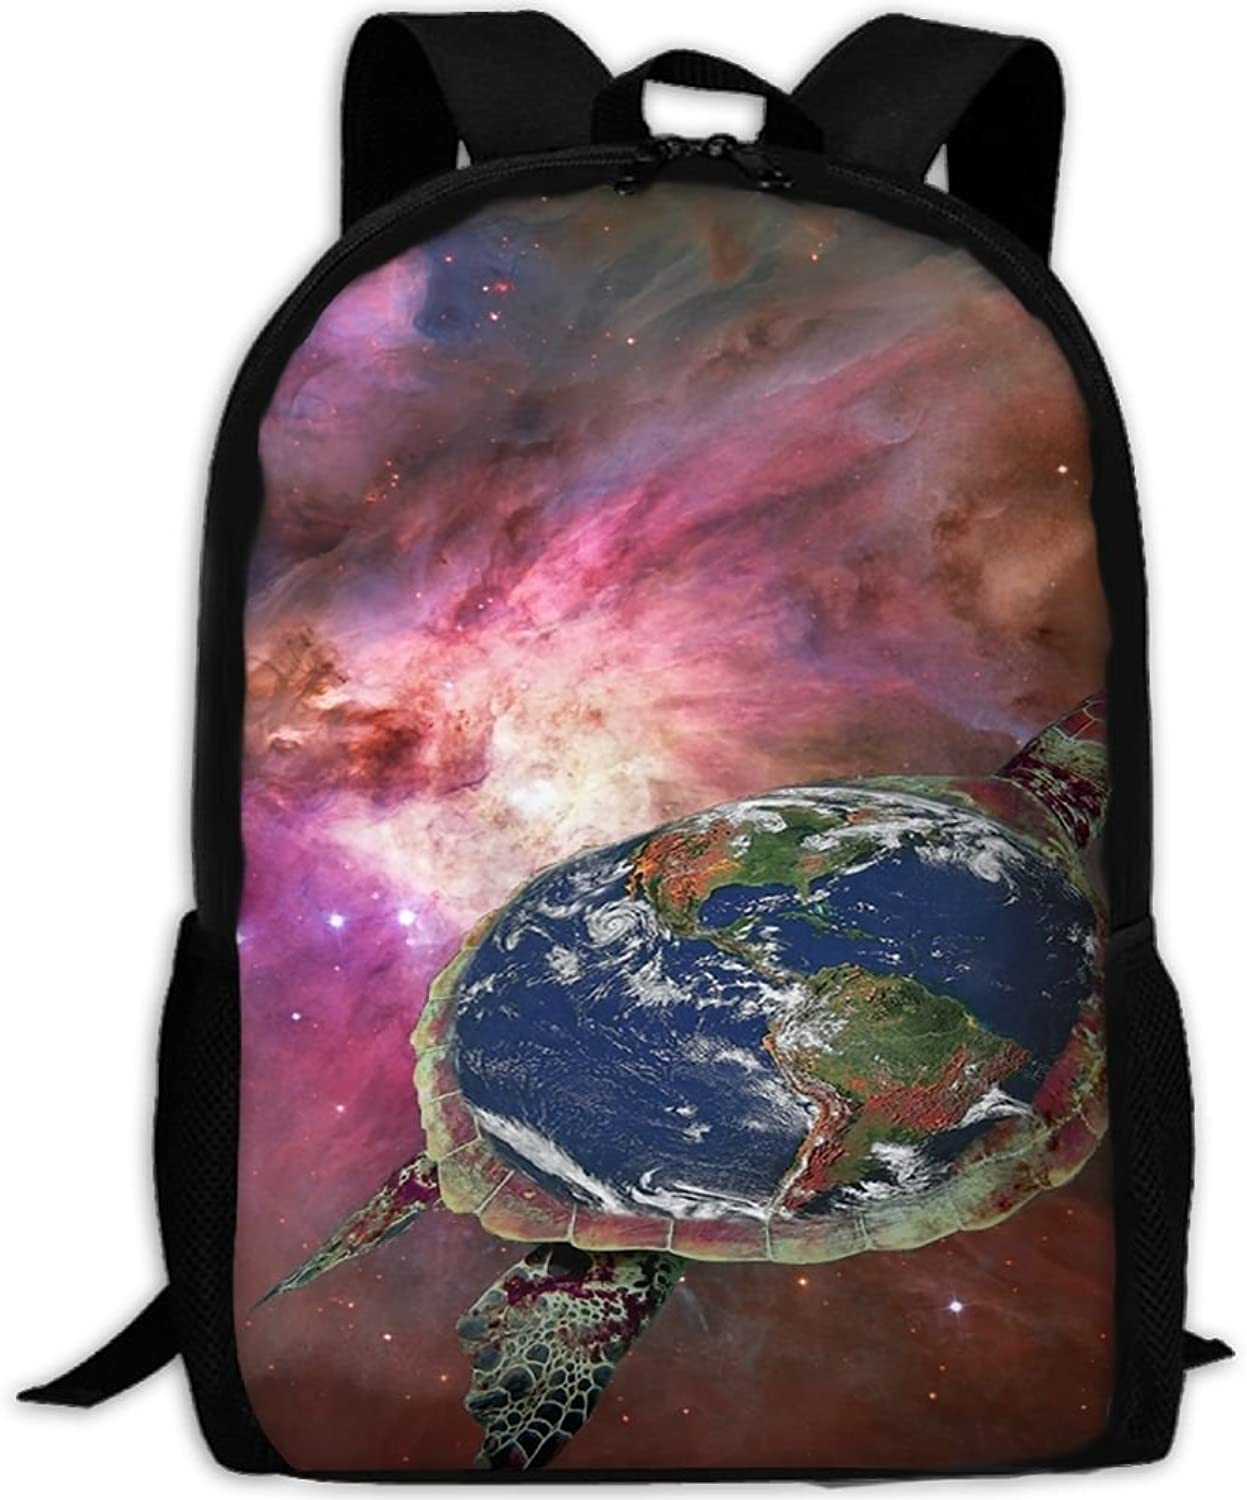 Adult Backpack Sea Turtle Planet College Daypack Oxford Bag Unisex Business Travel Sports Bag with Adjustable Strap